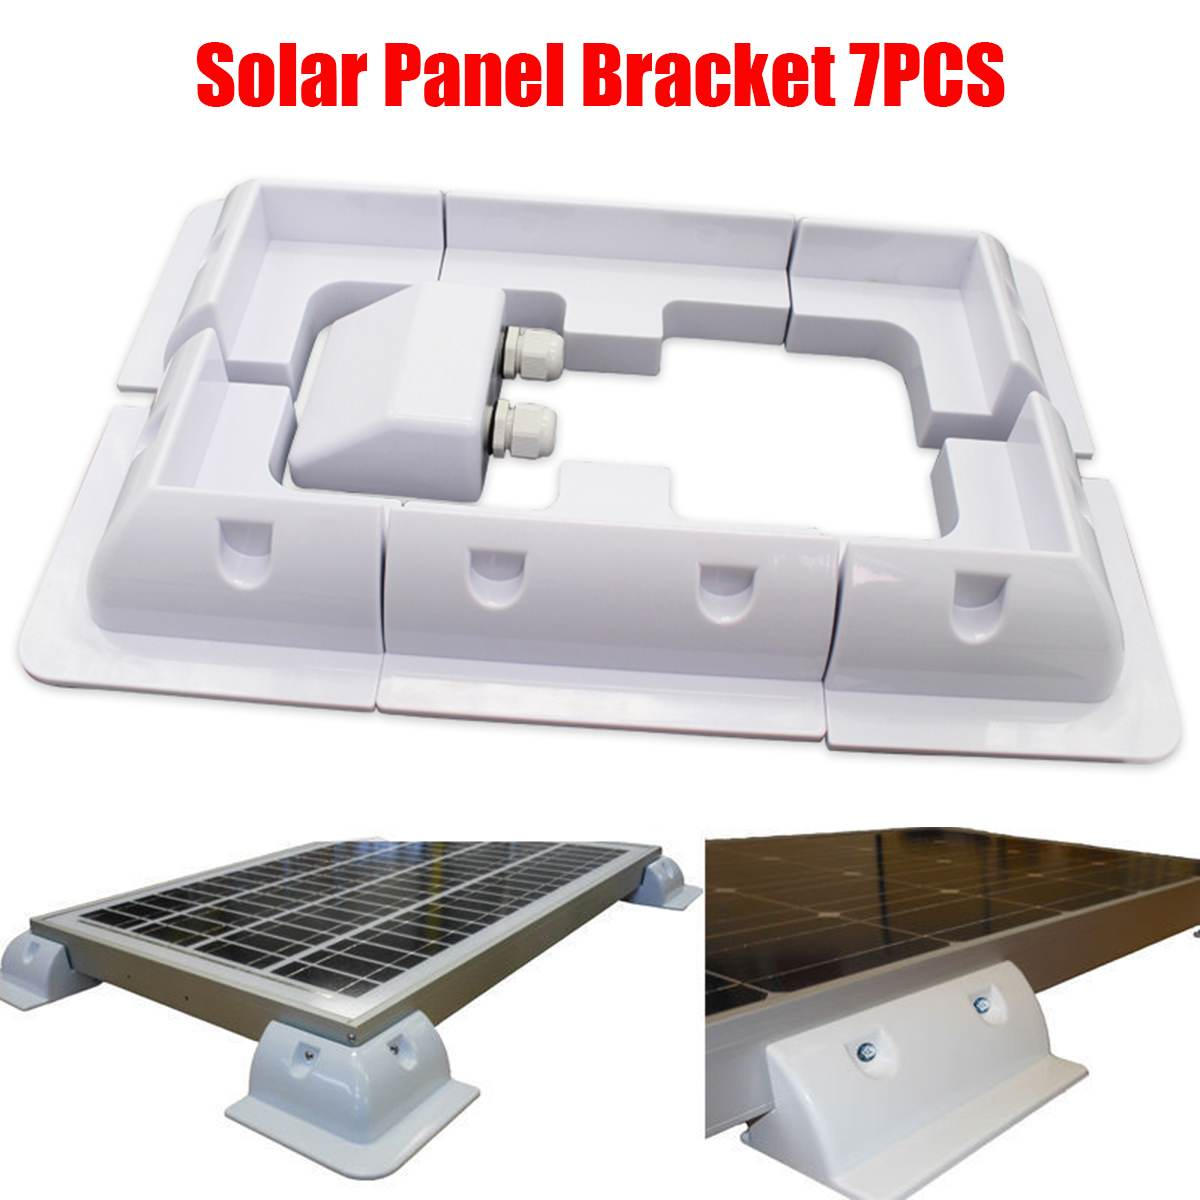 7pcs/set White ABS Solar Panel Mounting Bracket Kits Cable Entry Gand Ideal for Caravan Motorhome RV Boat Vehicle Roof Mount